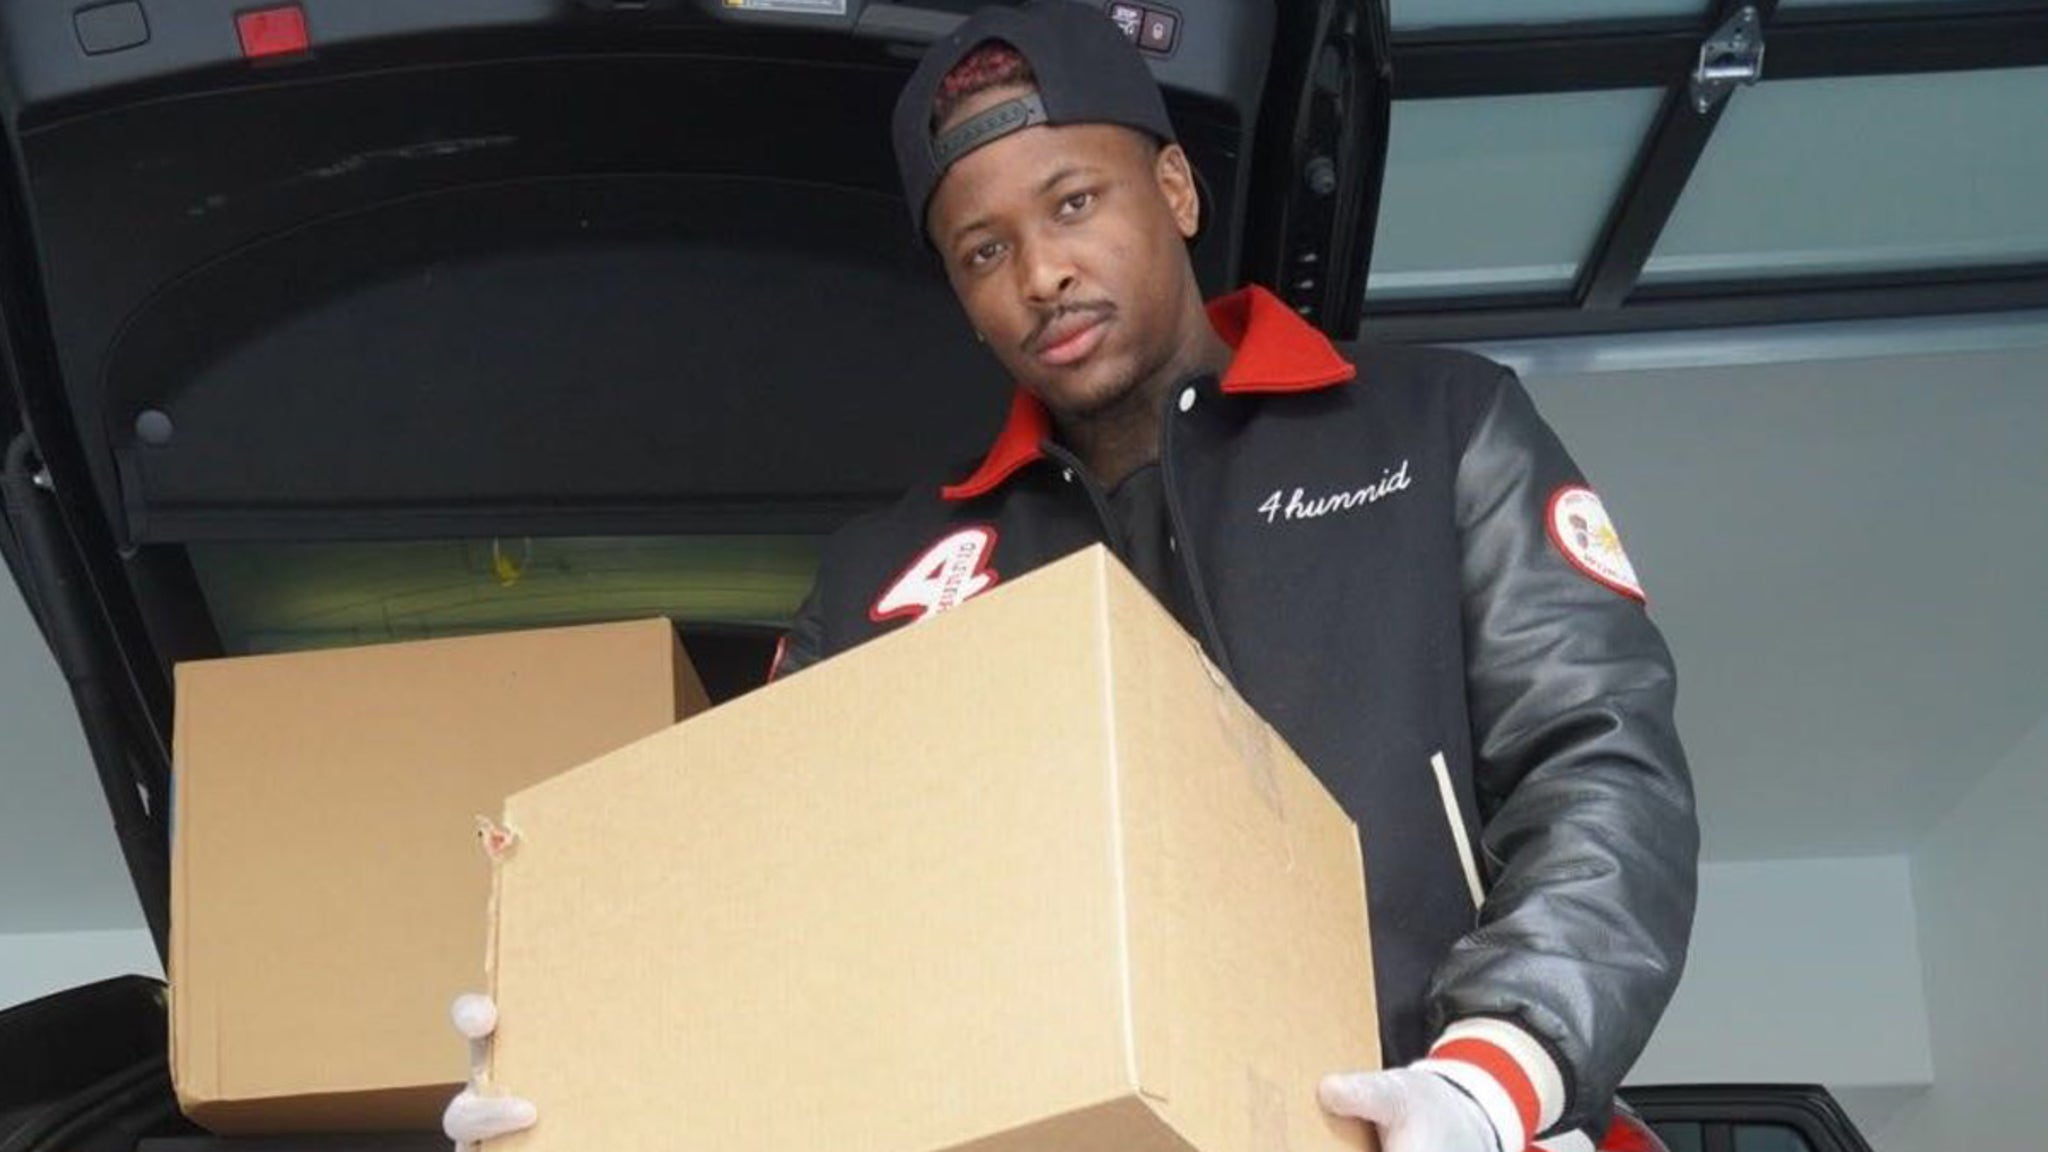 YG's Nonprofit 4Hunnid Ways Delivers PPE to Needy Families